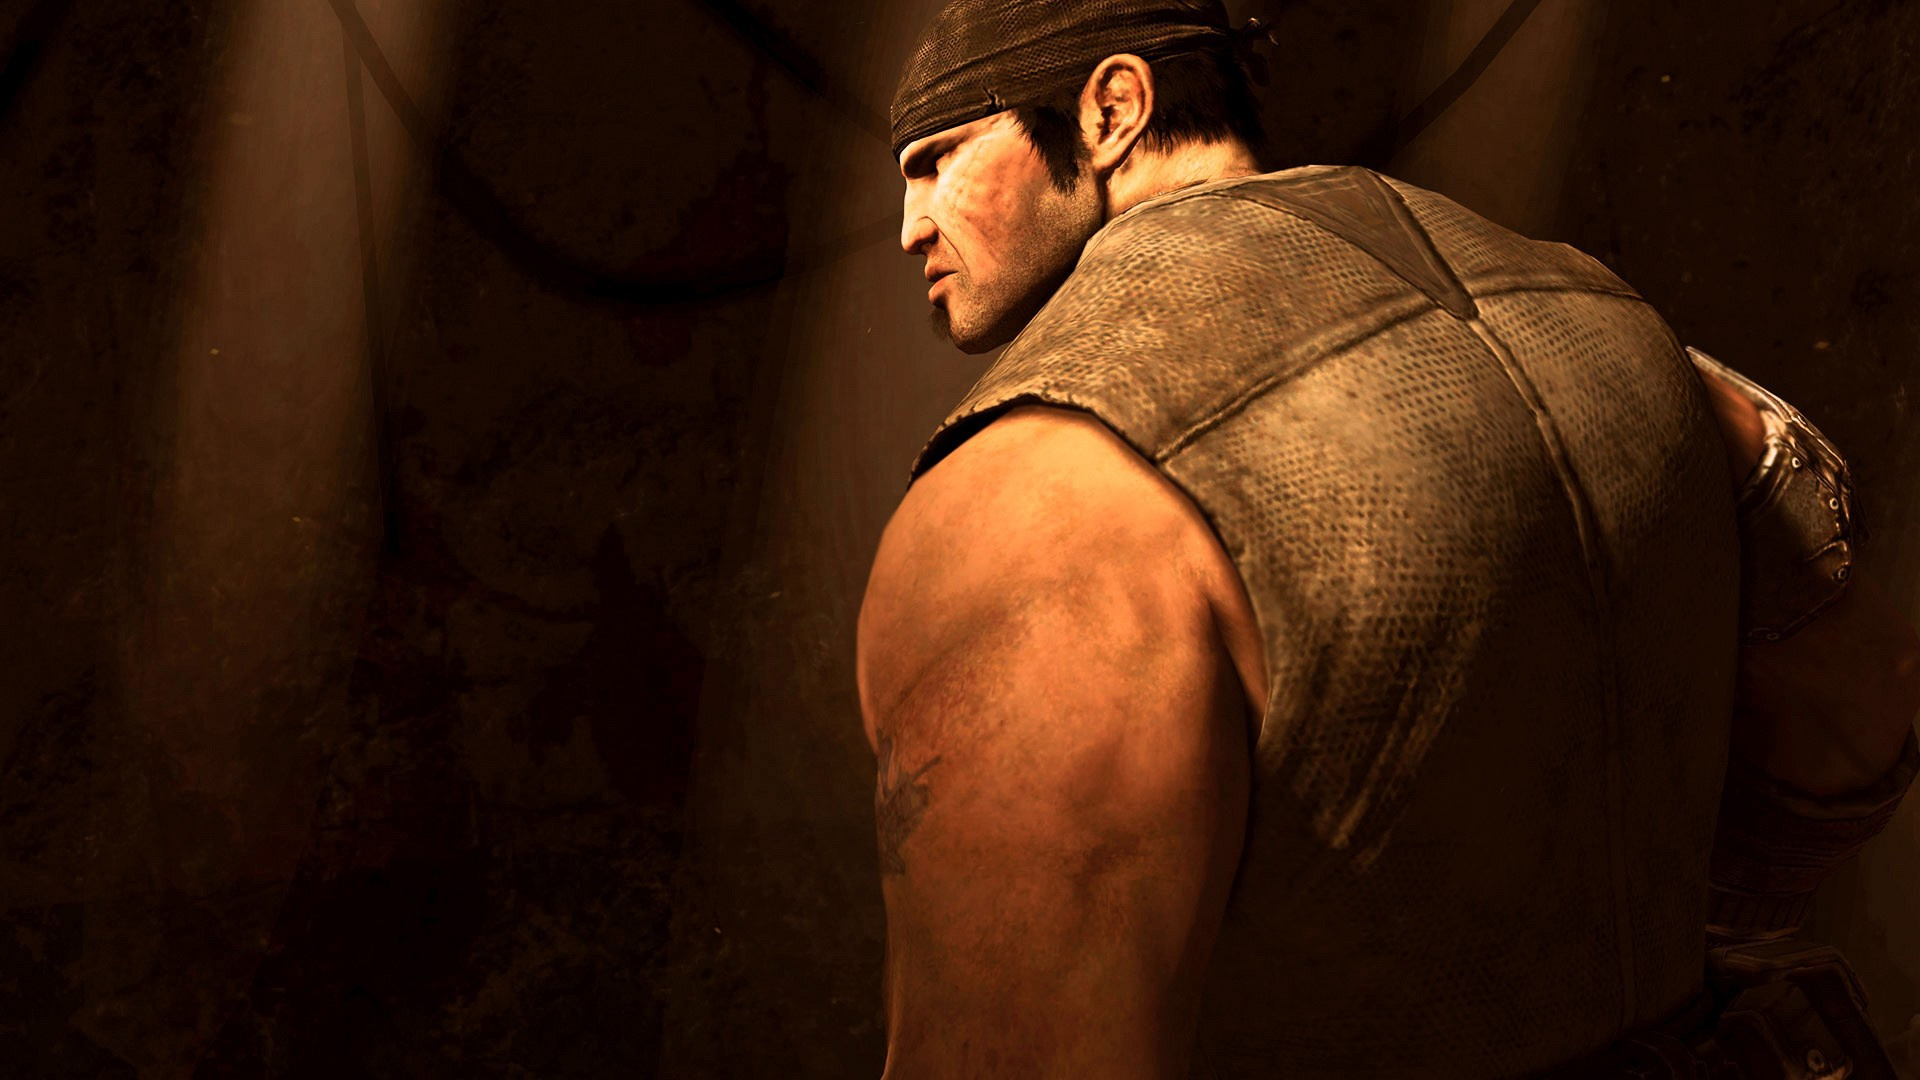 Gears Of War 3 Hd Wallpapers For Android: Gears Of War 3 Marcus #4158085, 1920x1080